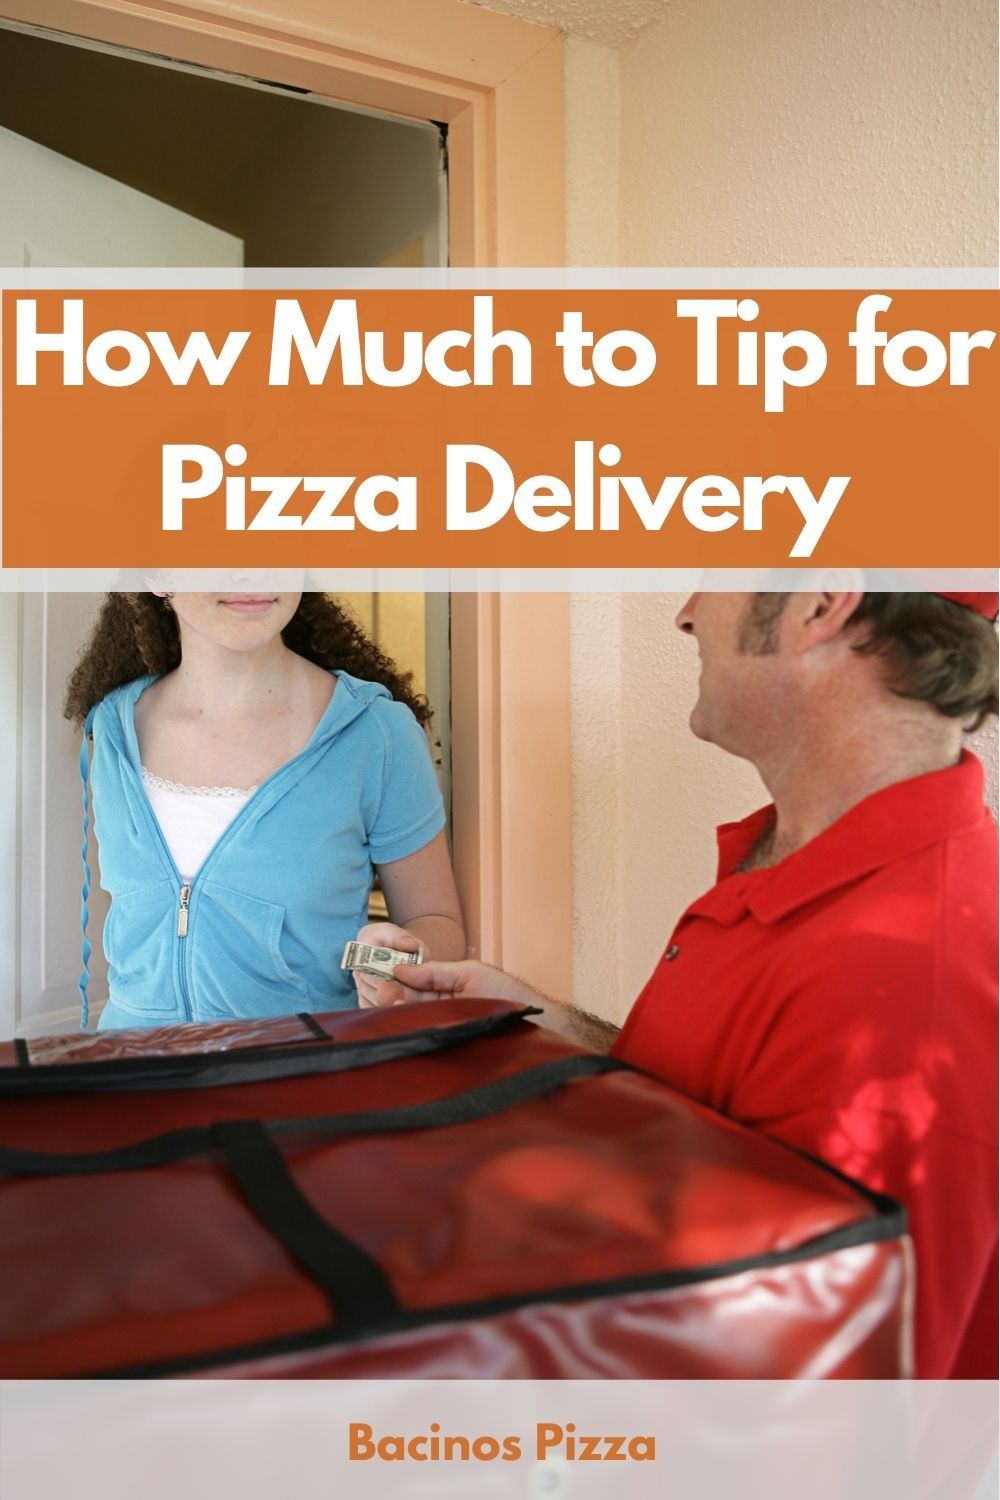 How Much to Tip for Pizza Delivery pin 2